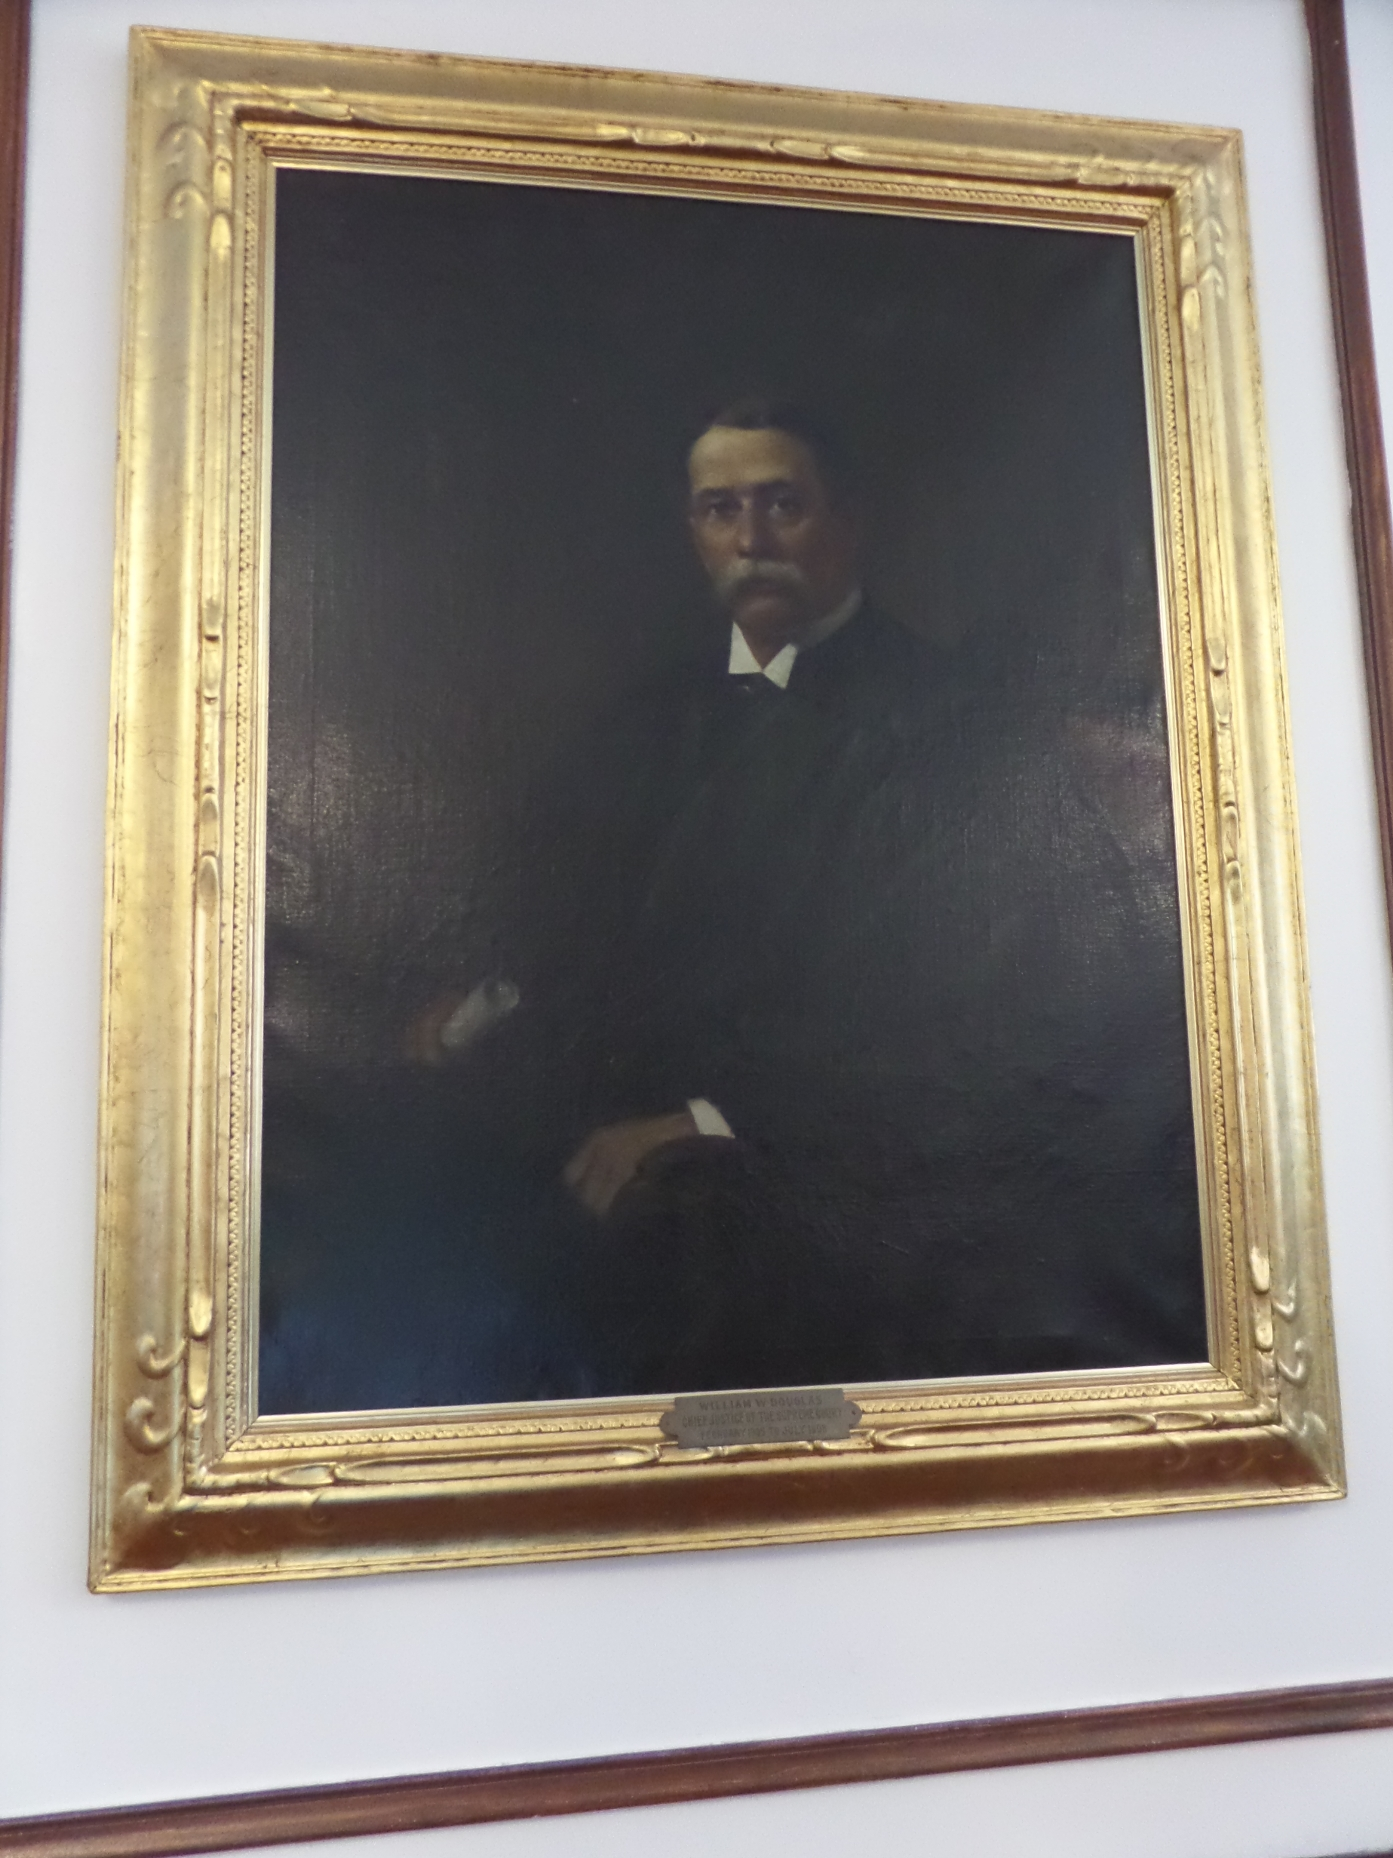 One of the first portraits I found was my uncle's, Judge William Wilberforce Douglas.